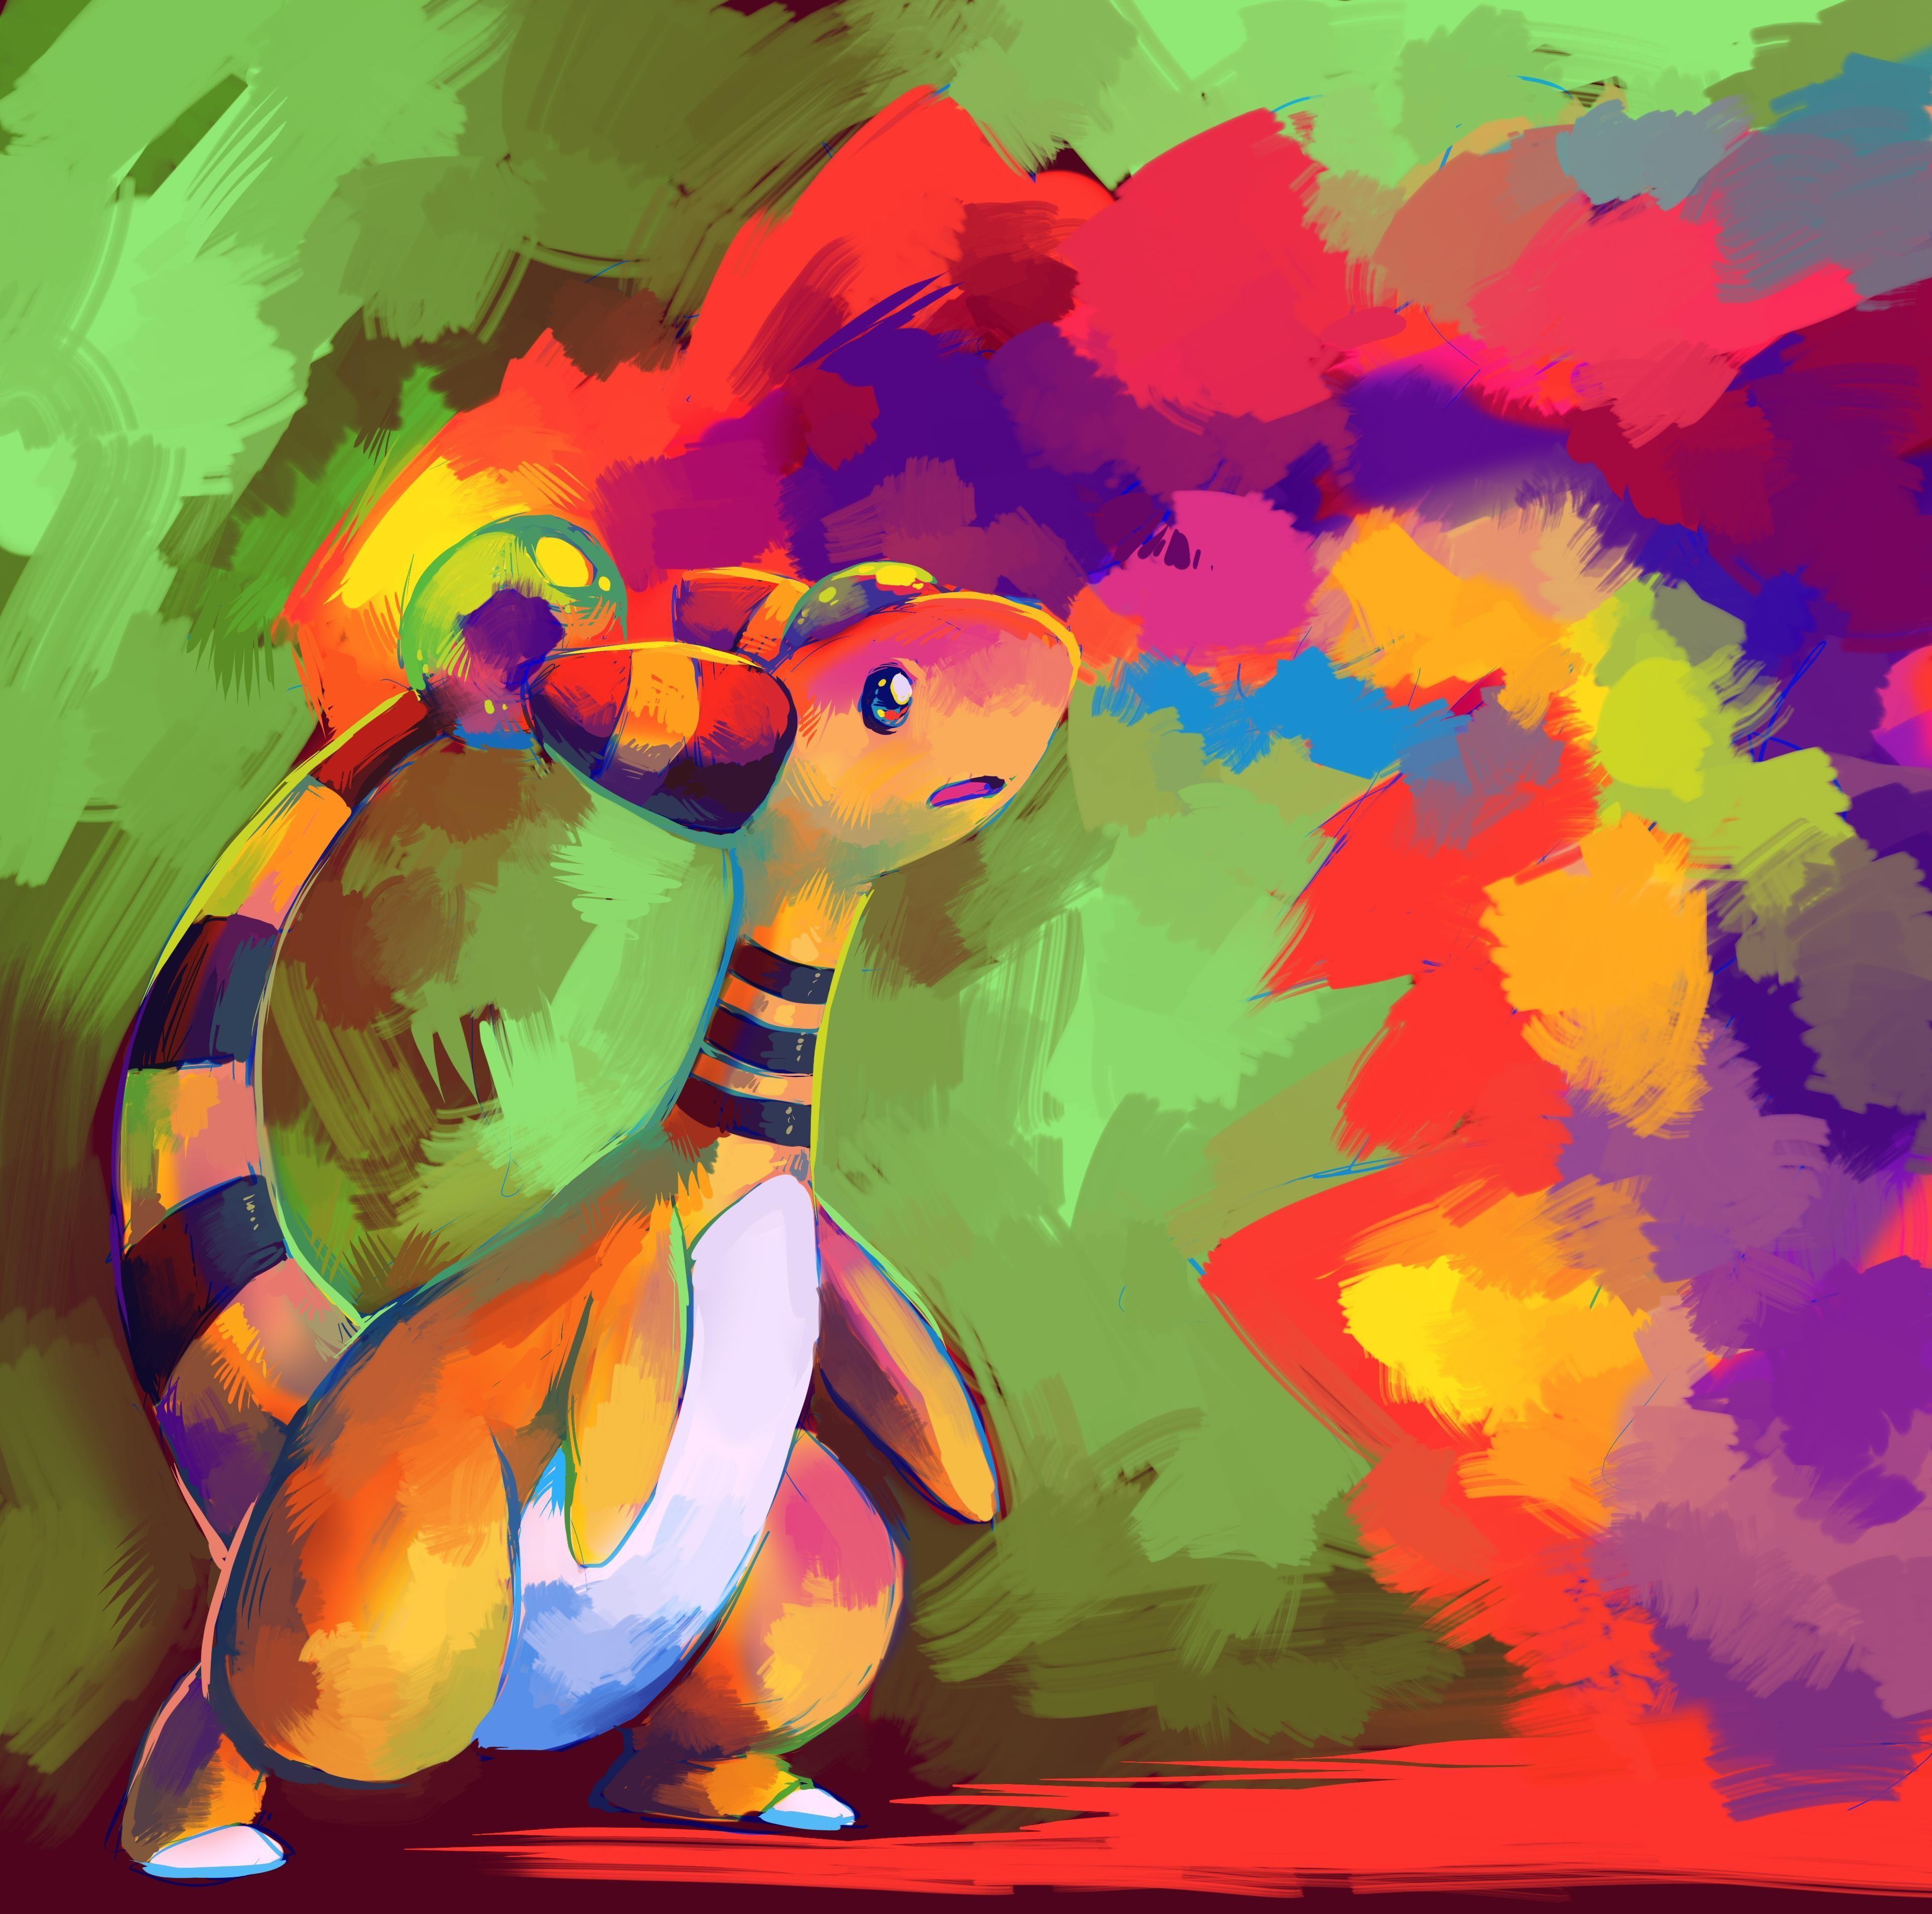 Ampharos The Light Pokémon HD Wallpapers From Gallsource